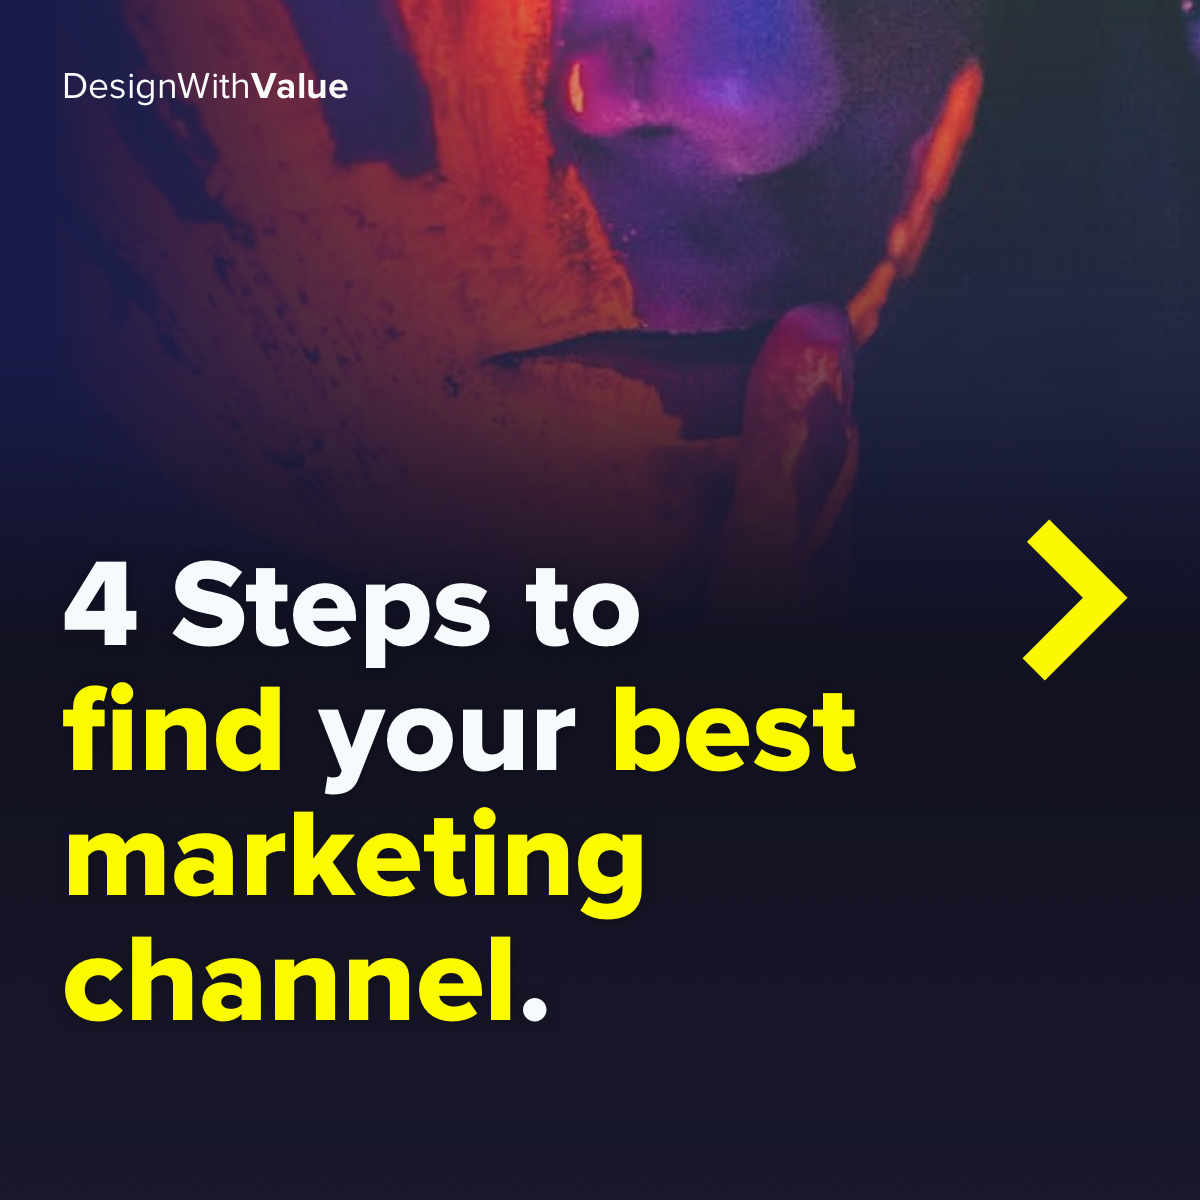 4 steps to find your best marketing channel